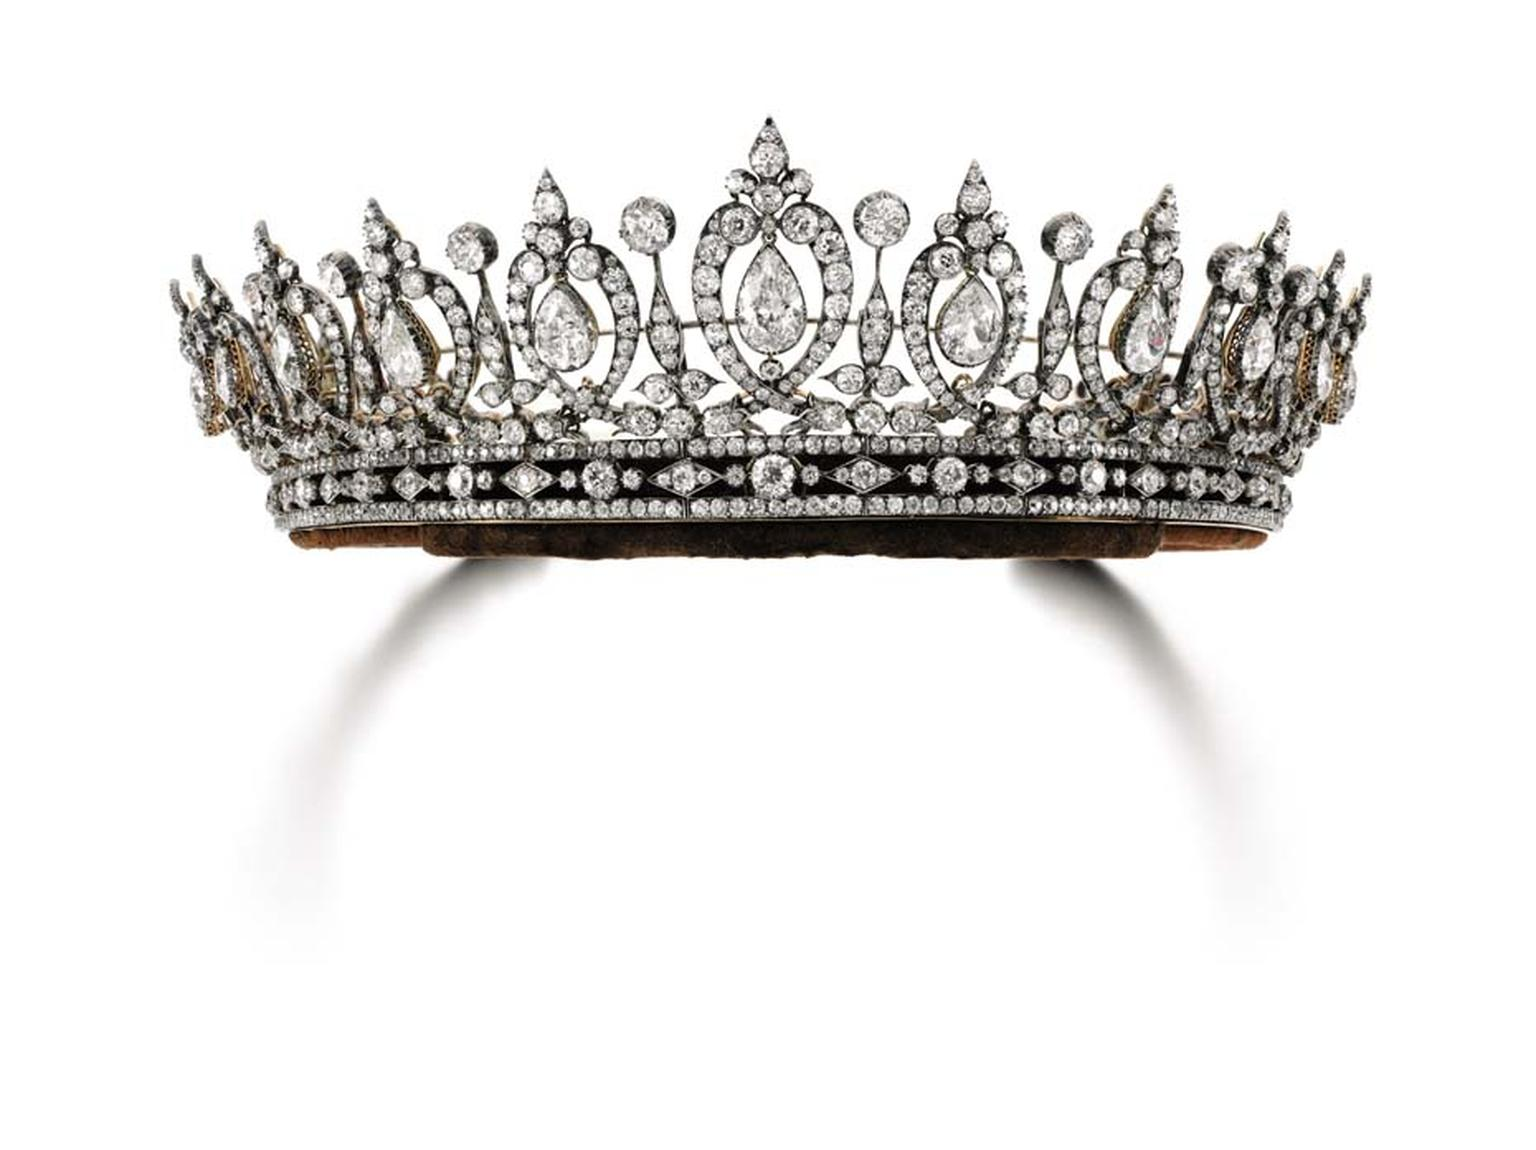 This intricate diamond tiara from the estate of the Duchess of Roxburghe, which will be auctioned by Sotheby's Geneva on 12 May, dates back to the last quarter of the 19th century and can also be worn as a necklace (estimate: $306-510,000).